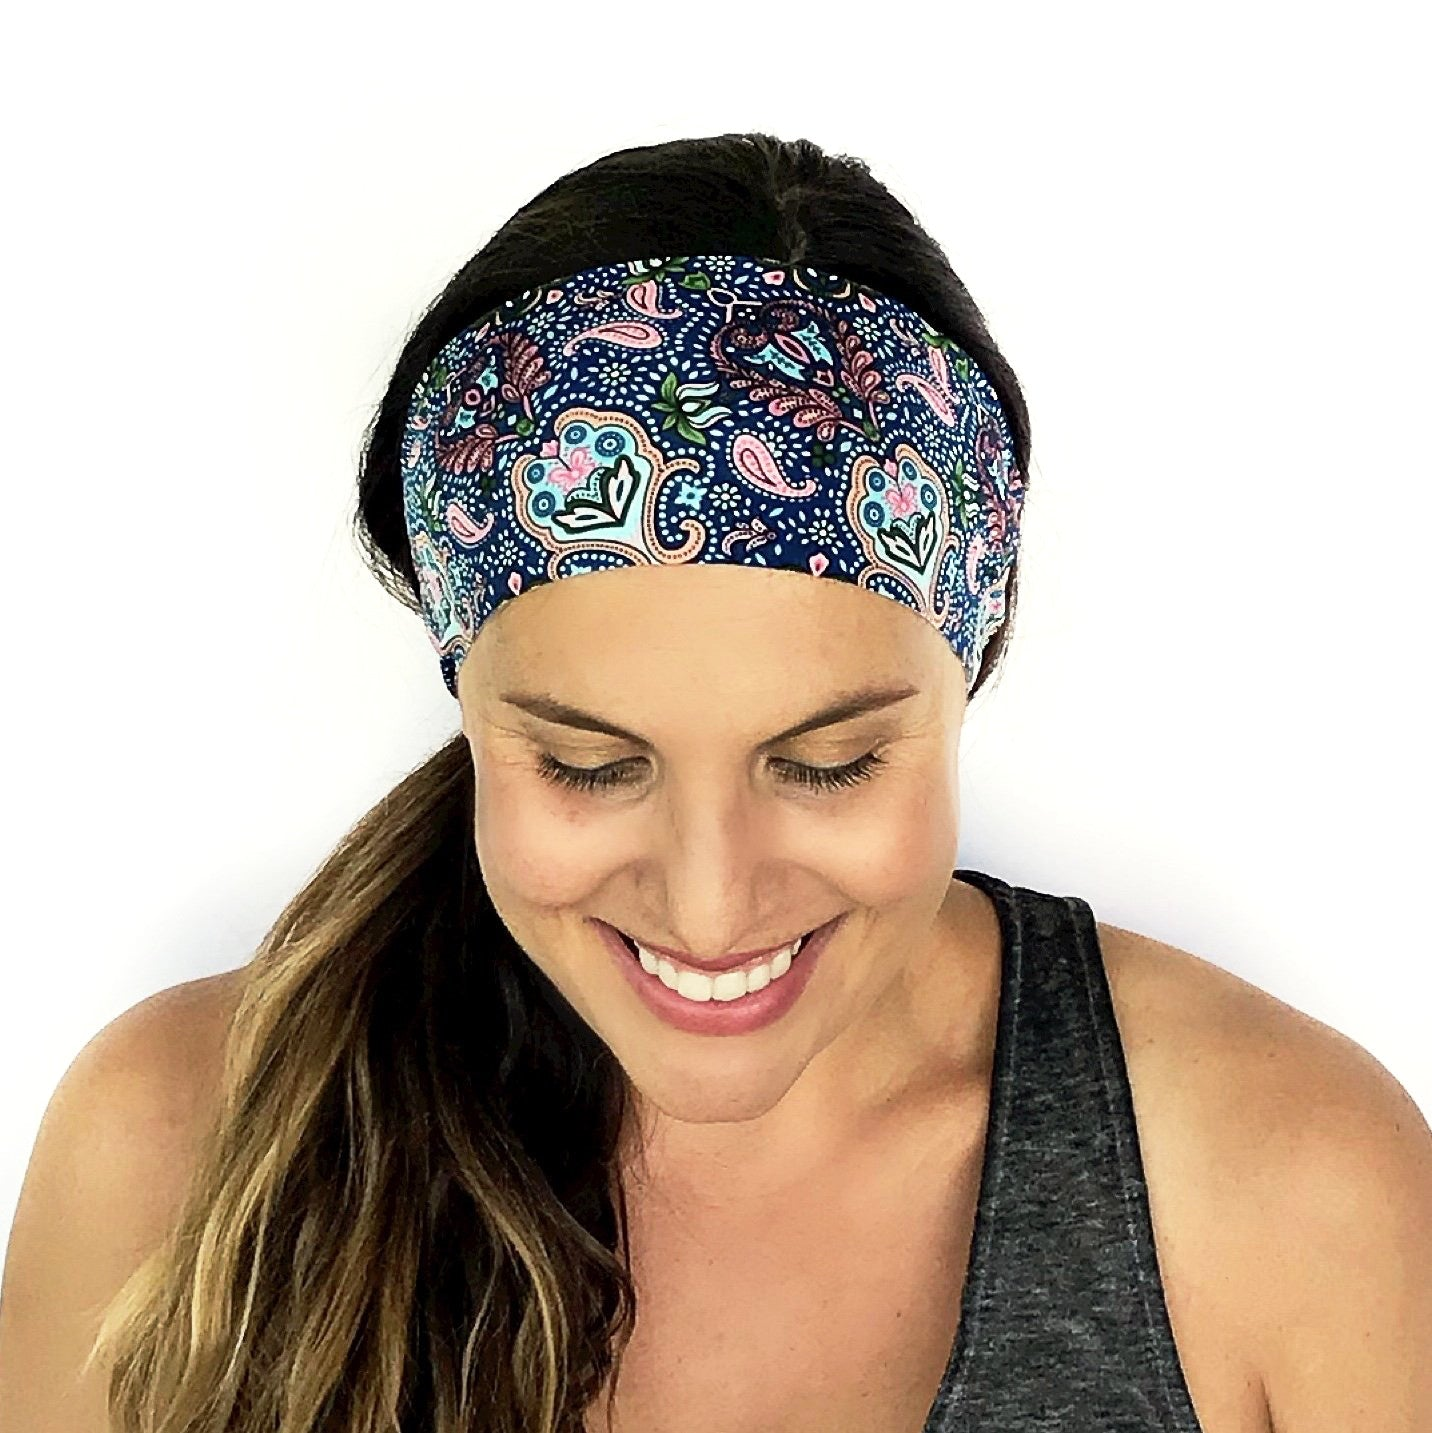 Divinity Workout Headband